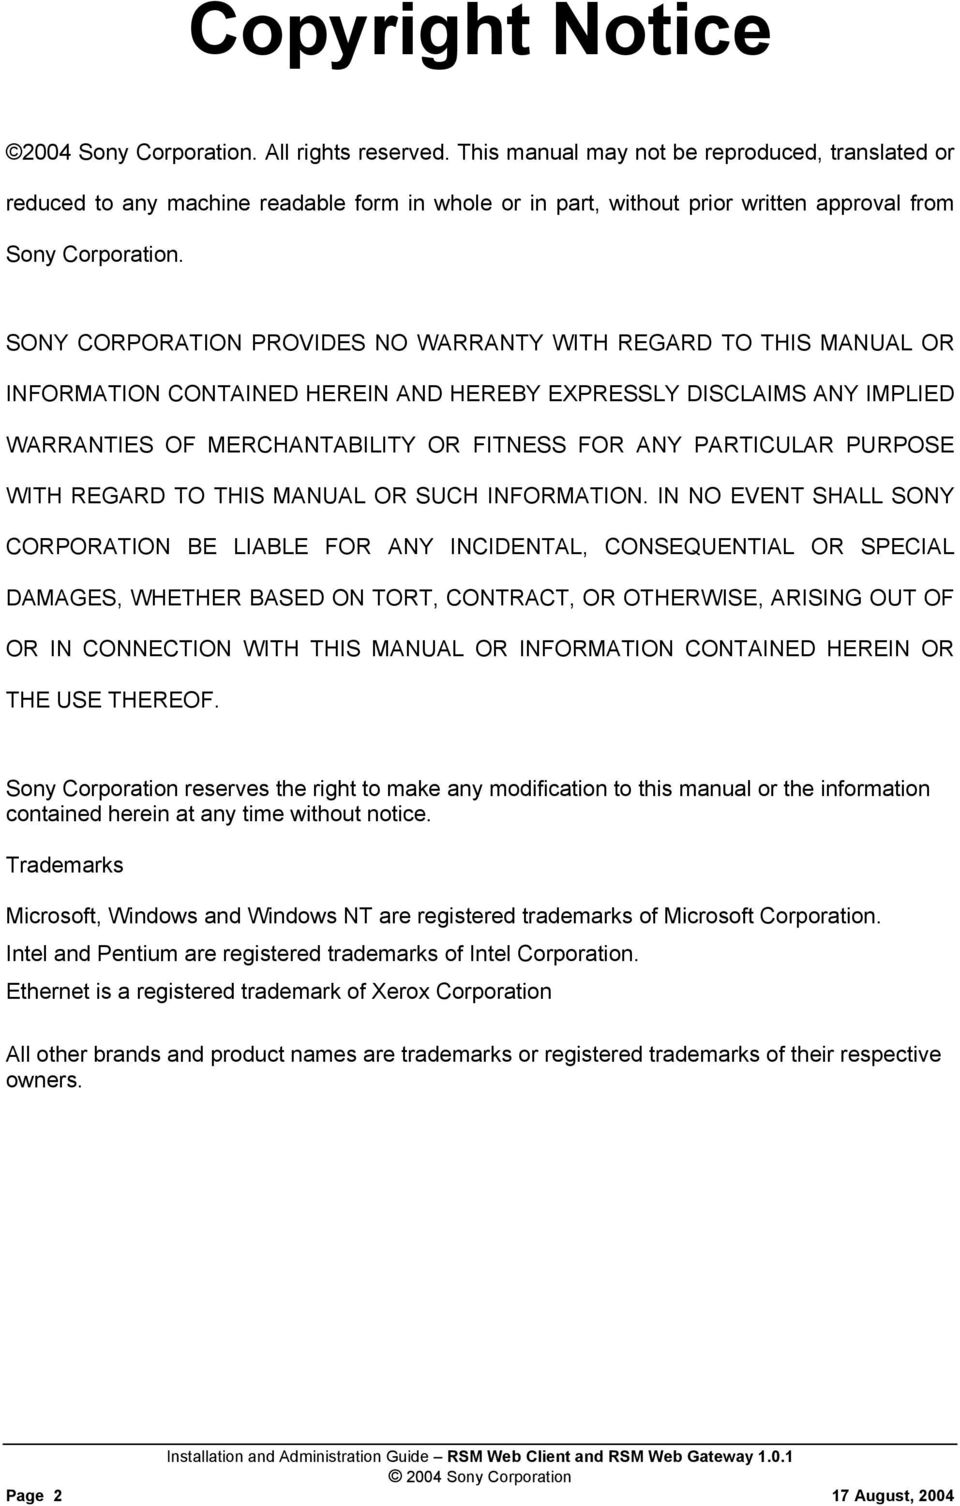 SONY CORPORATION PROVIDES NO WARRANTY WITH REGARD TO THIS MANUAL OR INFORMATION CONTAINED HEREIN AND HEREBY EXPRESSLY DISCLAIMS ANY IMPLIED WARRANTIES OF MERCHANTABILITY OR FITNESS FOR ANY PARTICULAR